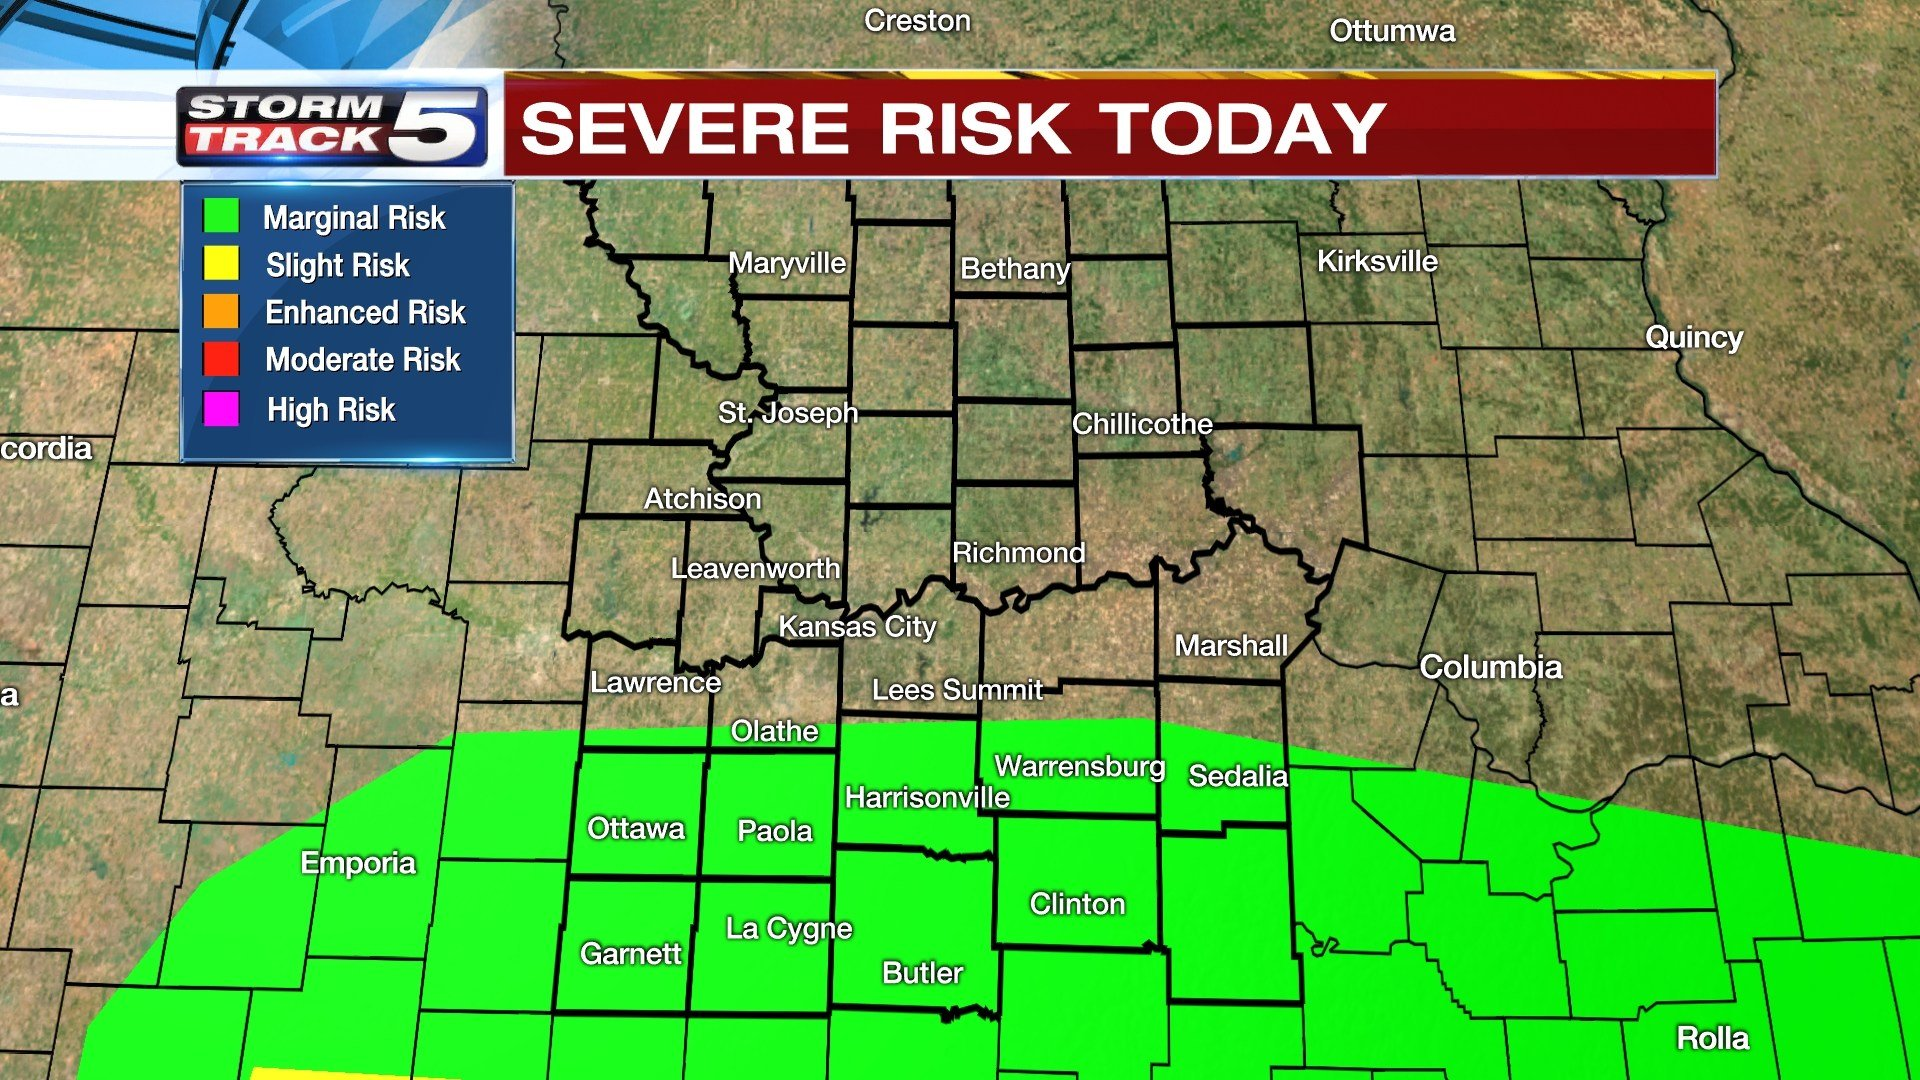 StormTrack5 MeteorologistLisa Teachman says these storms will develop south of Interstate 70, generally along and south of a Paola to Harrisonville to Clinton line. (KCTV5)